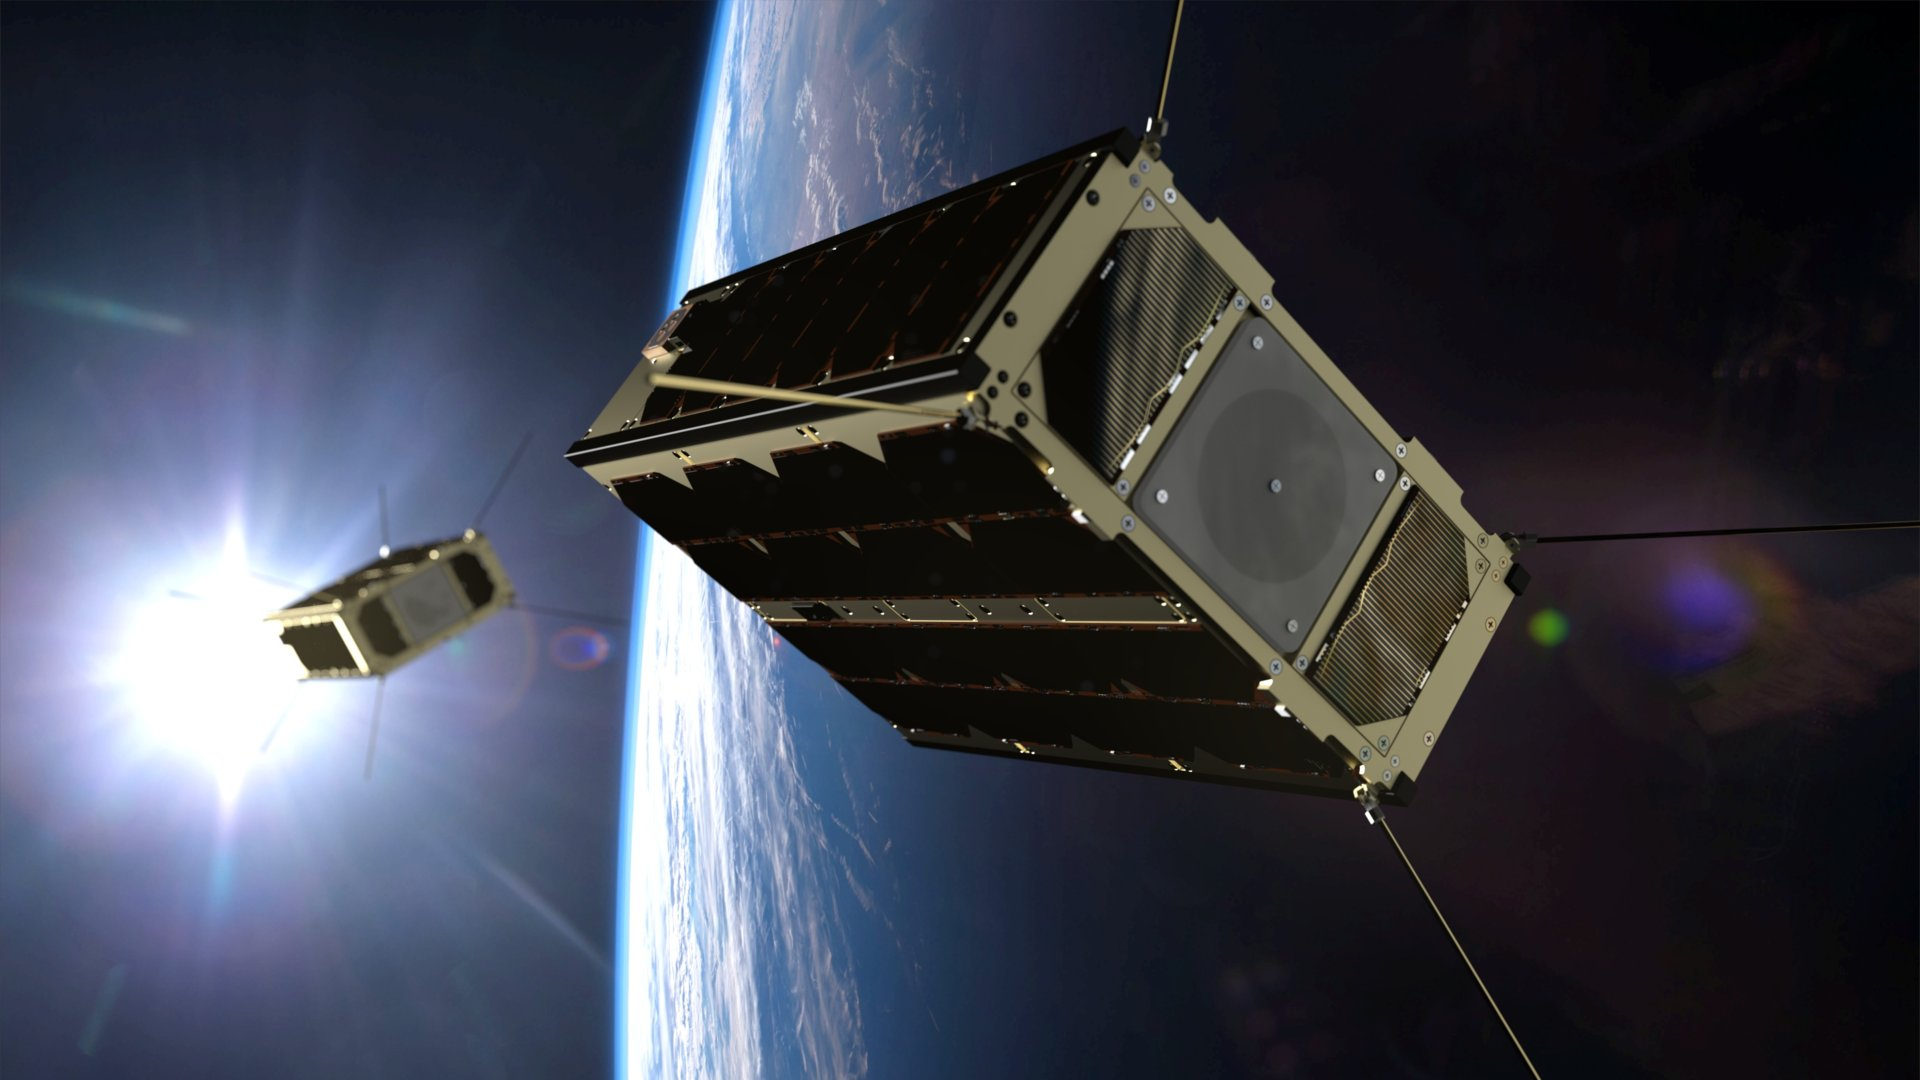 Technology CubeSats / Space Engineering & Technology / Our